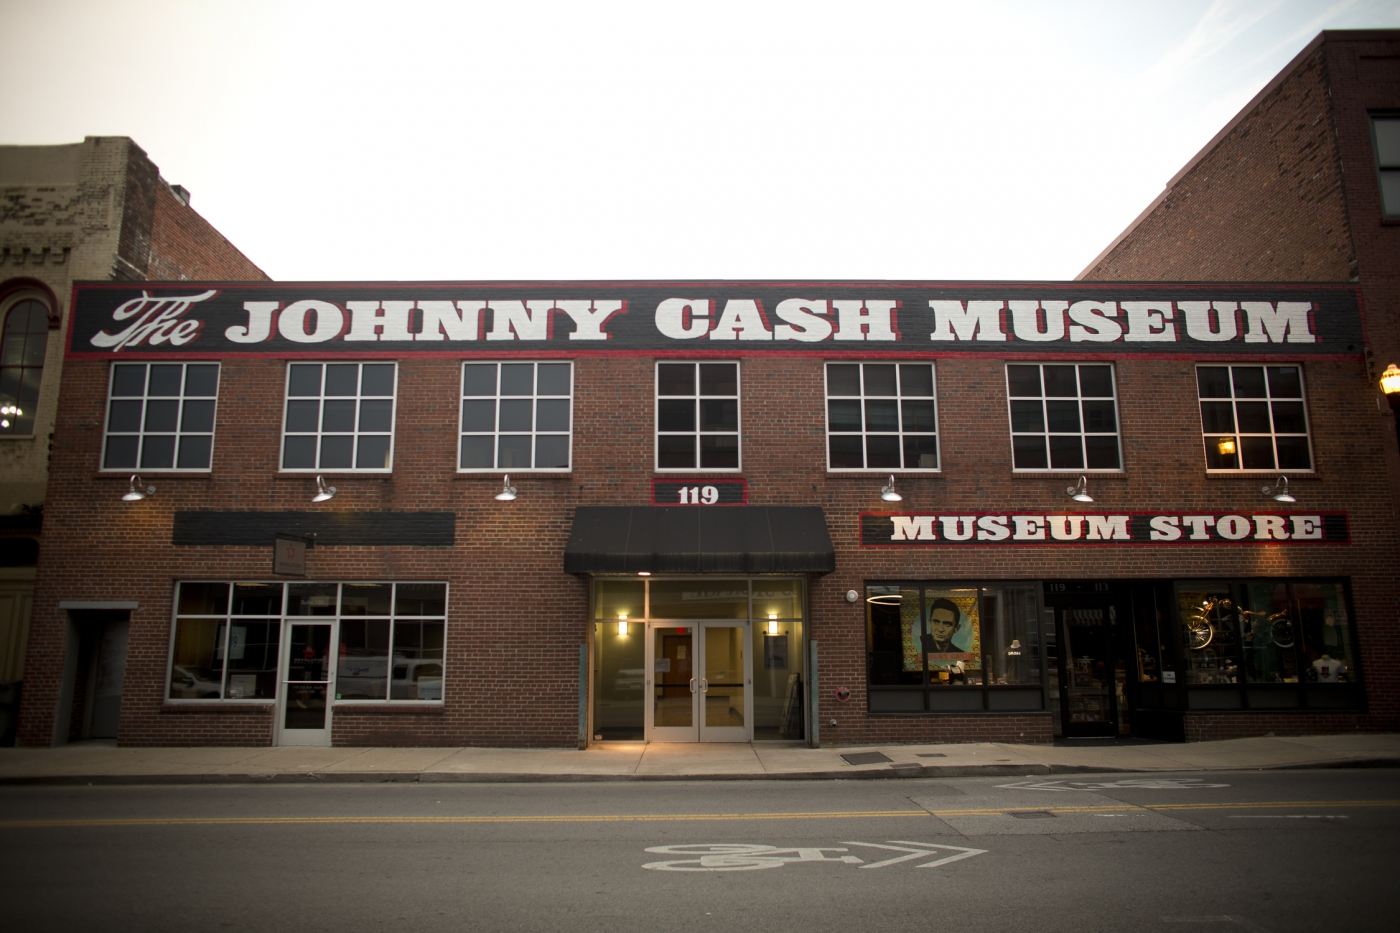 The famed Johnny Cash Museum.